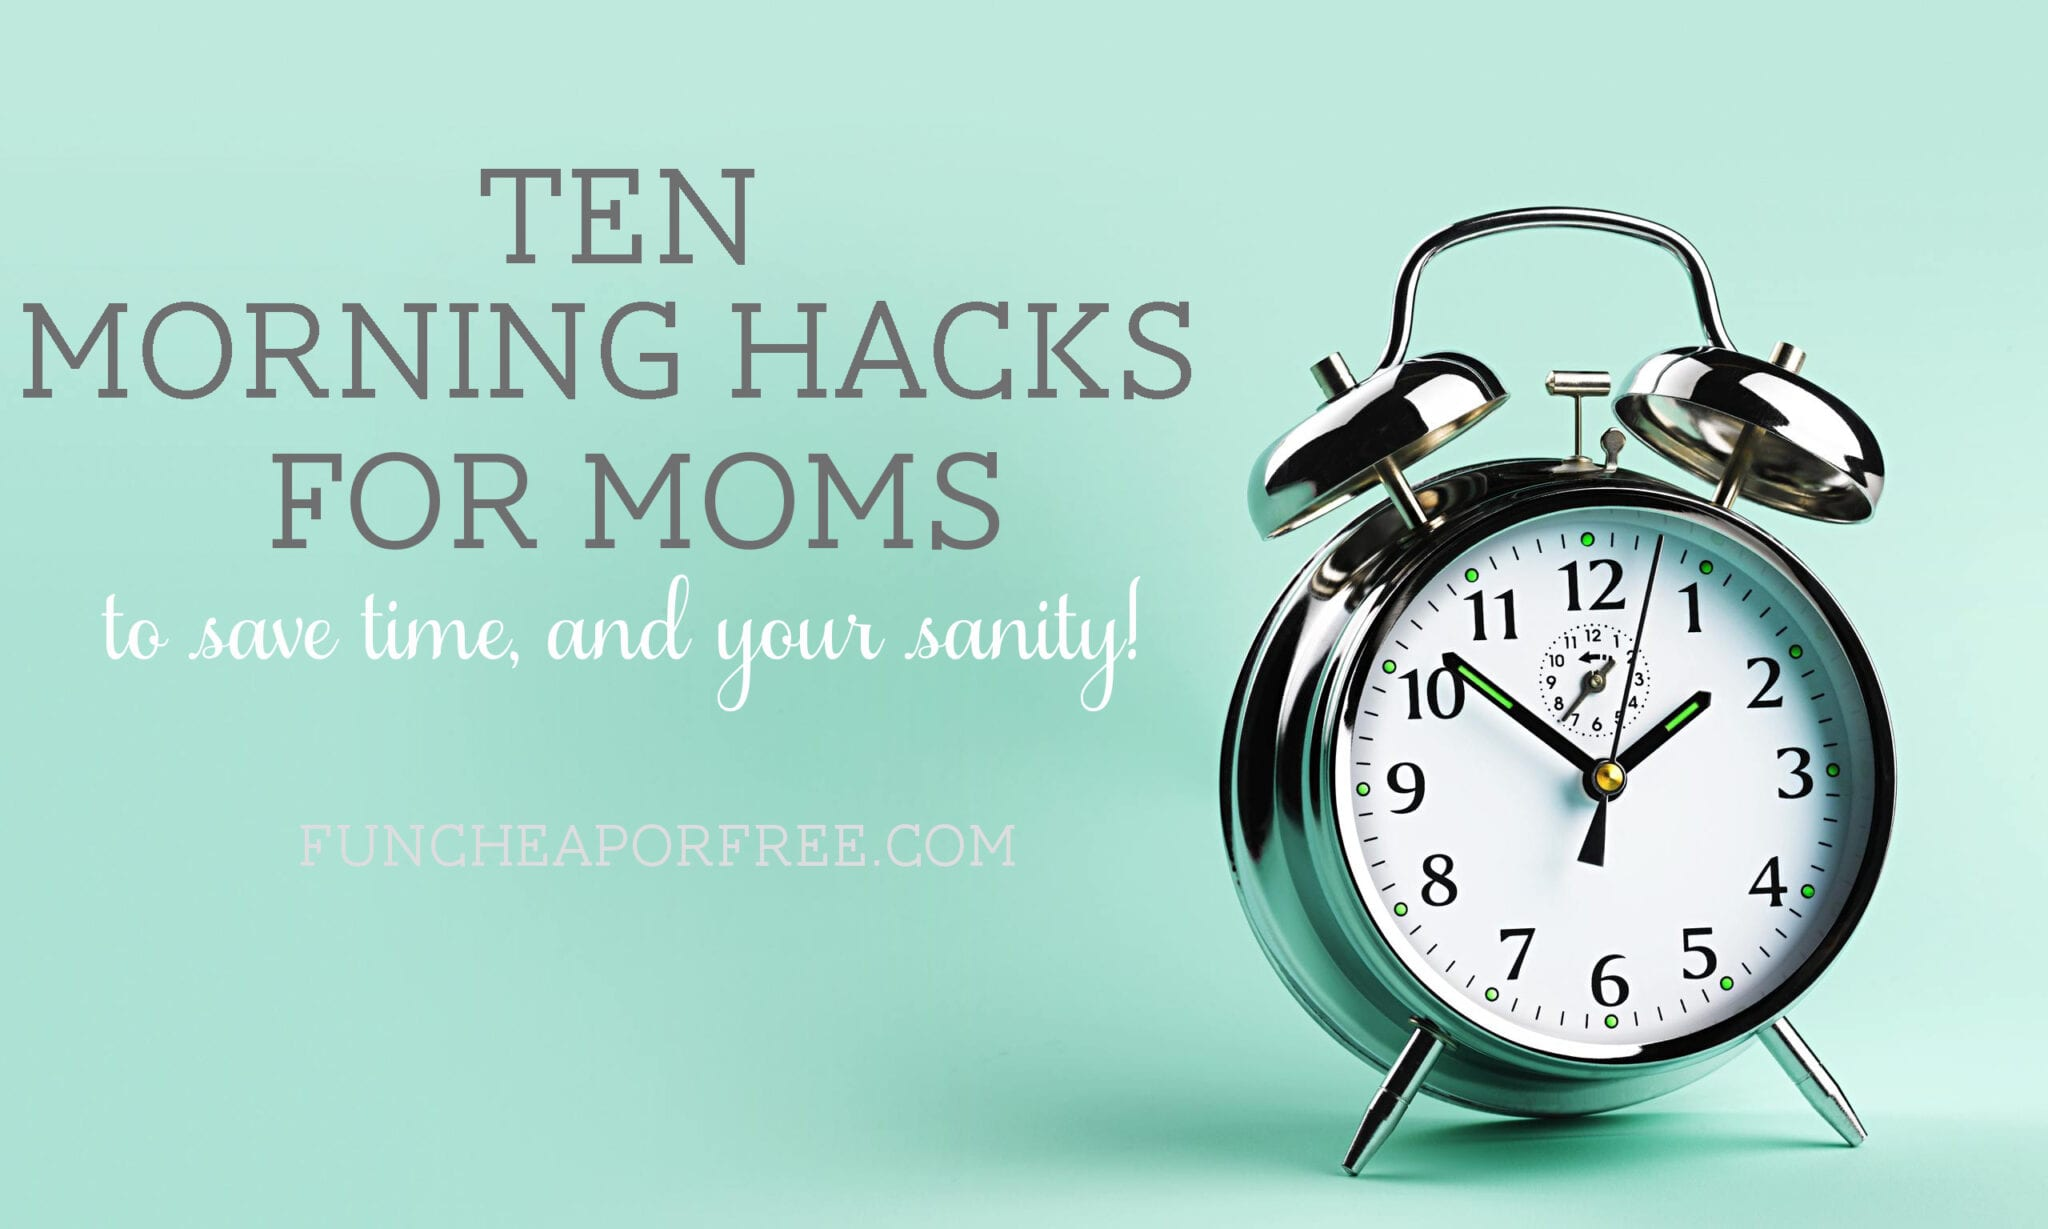 10 Morning Hacks for Moms! (Plus a FREE PRINTABLE!) www.funcheaporfree.com